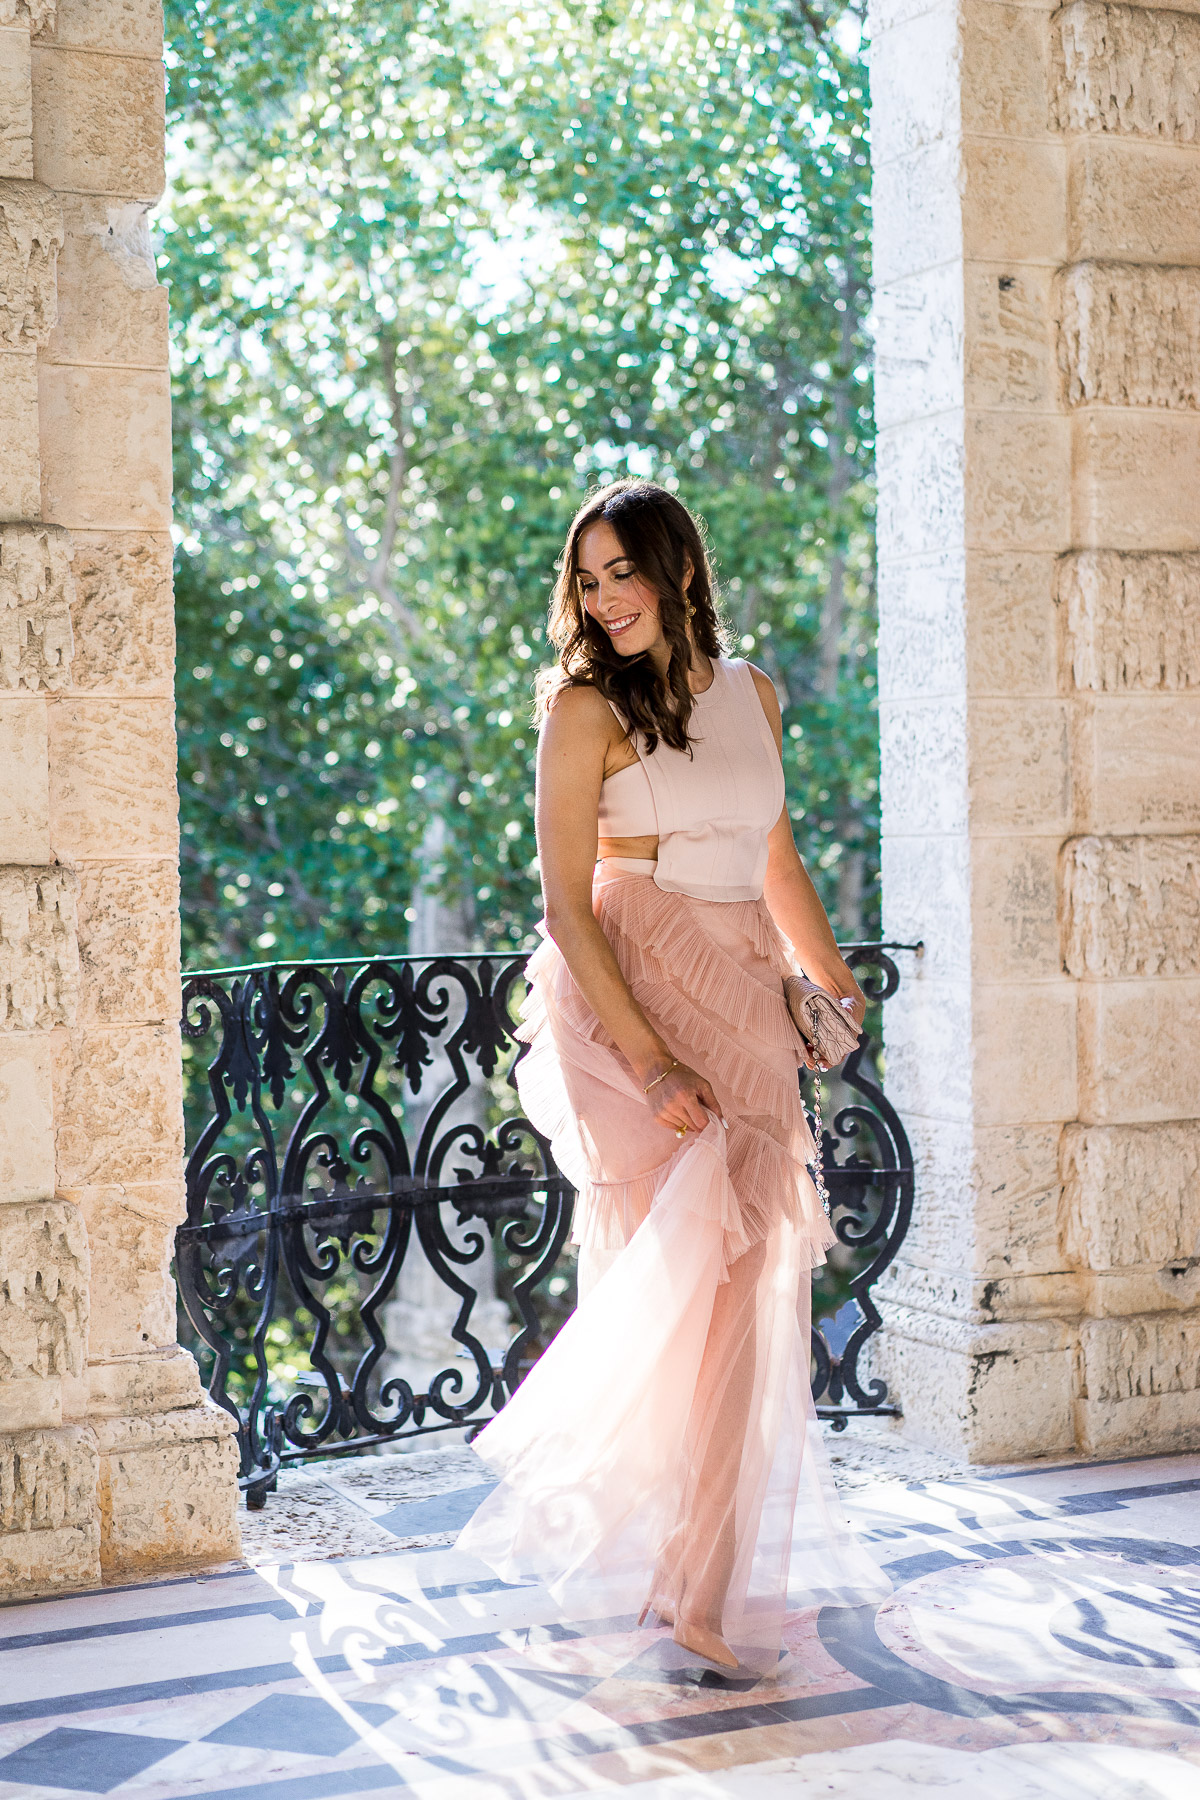 South Florida blogger Amanda from A Glam Lifestyle wears BCBG Avalon blush tulle gown at Viscaya Gardens in Miami